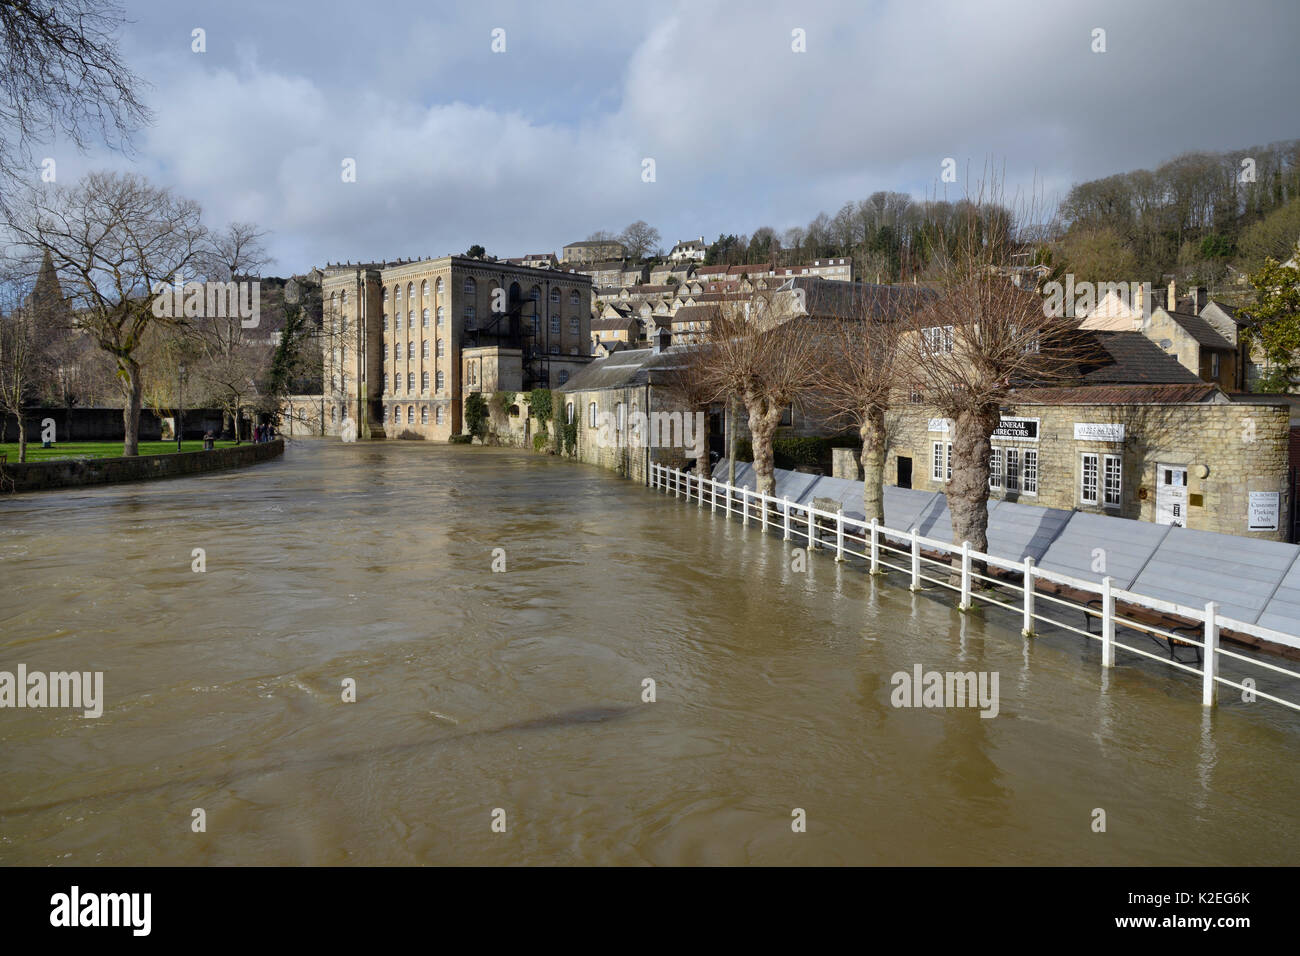 River Avon in spate through Bradford-on-Avon, with emergency flood defences to protect buildings from flooding, Stock Photo